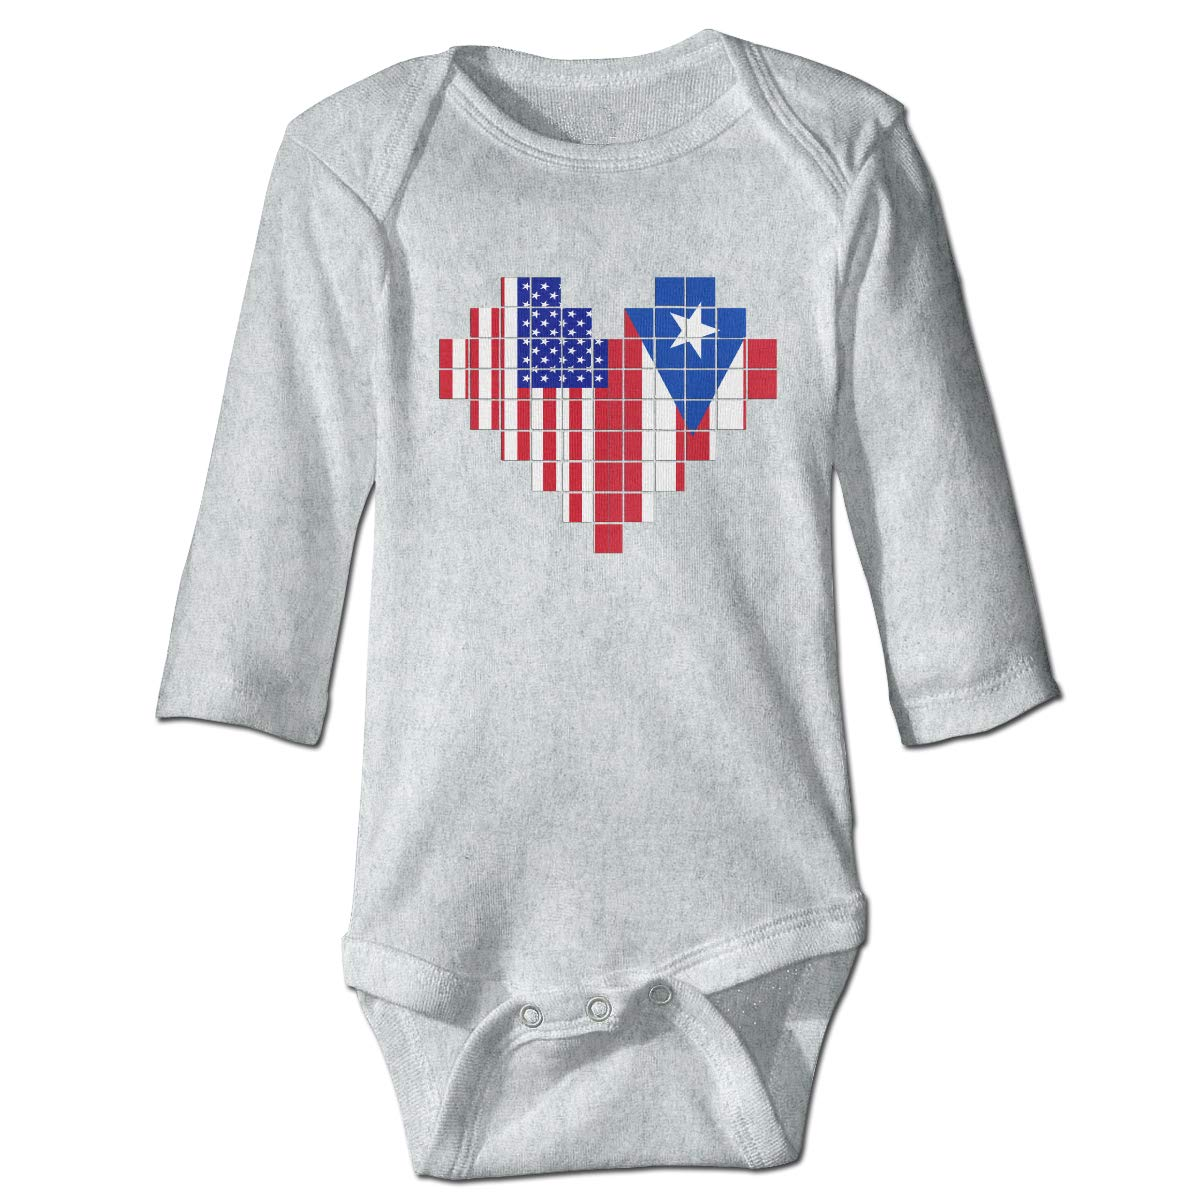 Baby Infant Toddler Long Sleeve Baby Clothes American Flag Puerto Rico Flag Puzzle Heart Playsuit Outfit Clothes